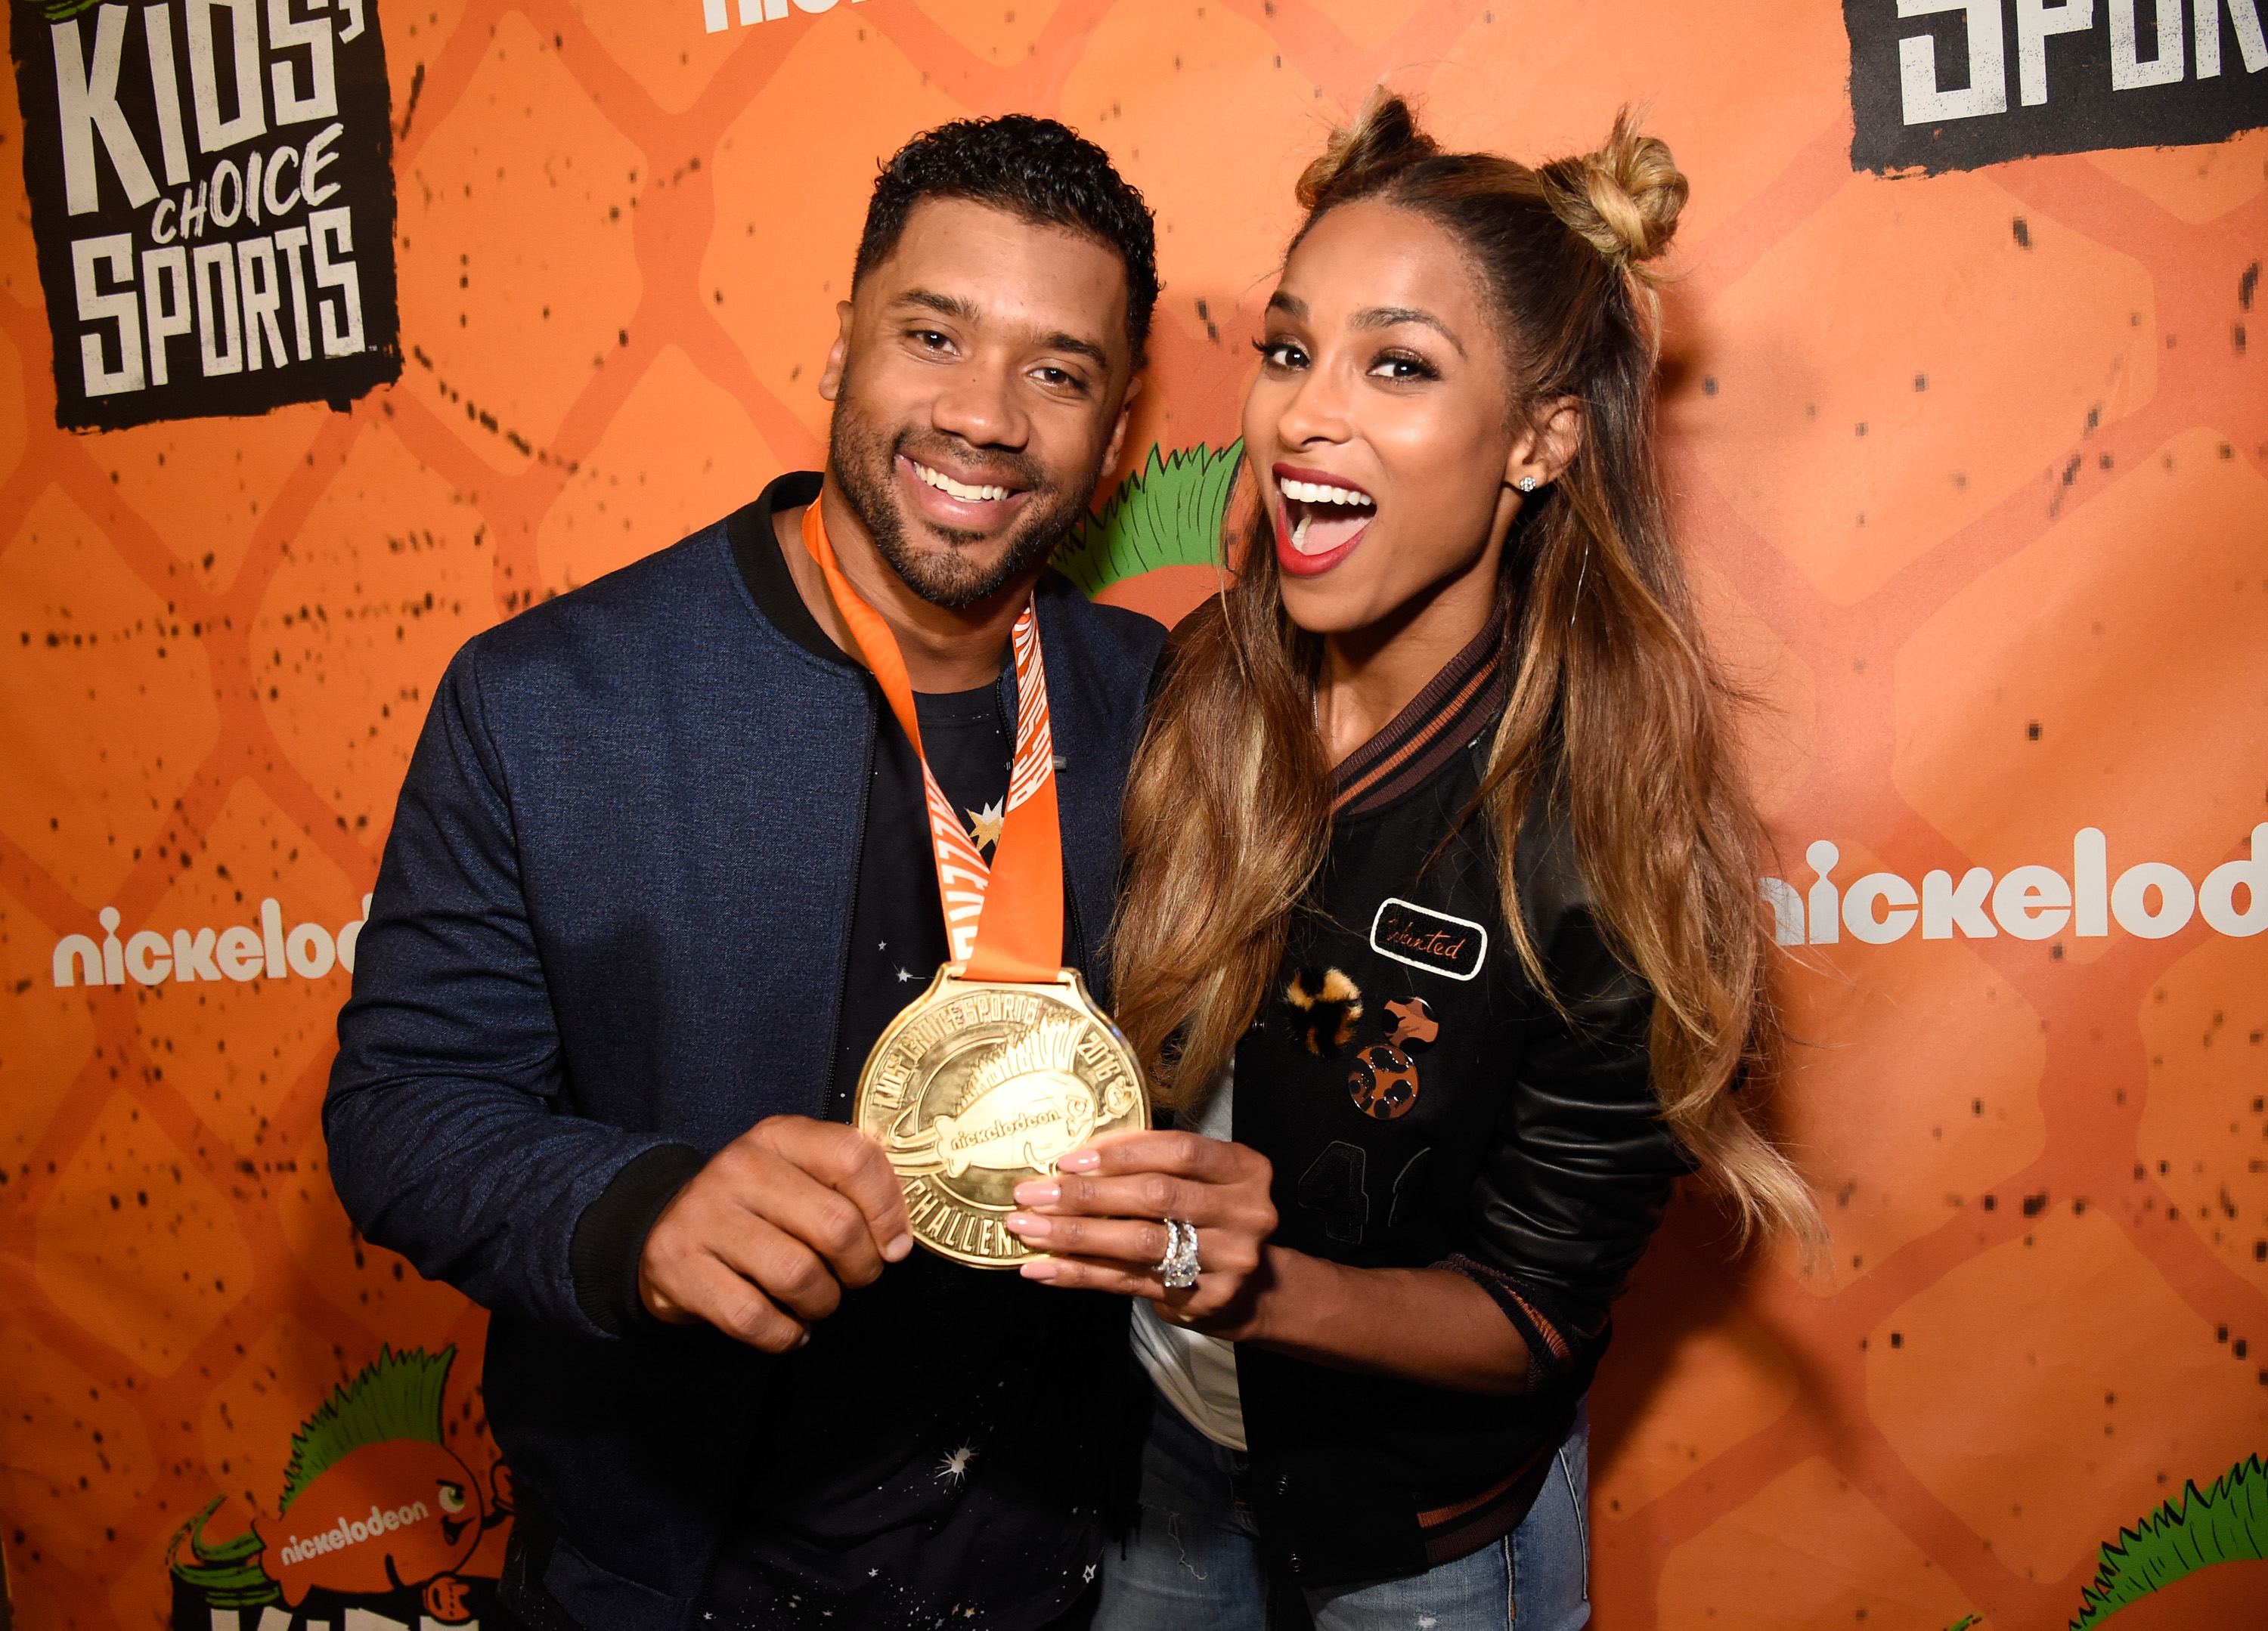 Nickelodeon Kids' Choice Sports Awards 2016 - Roaming Show